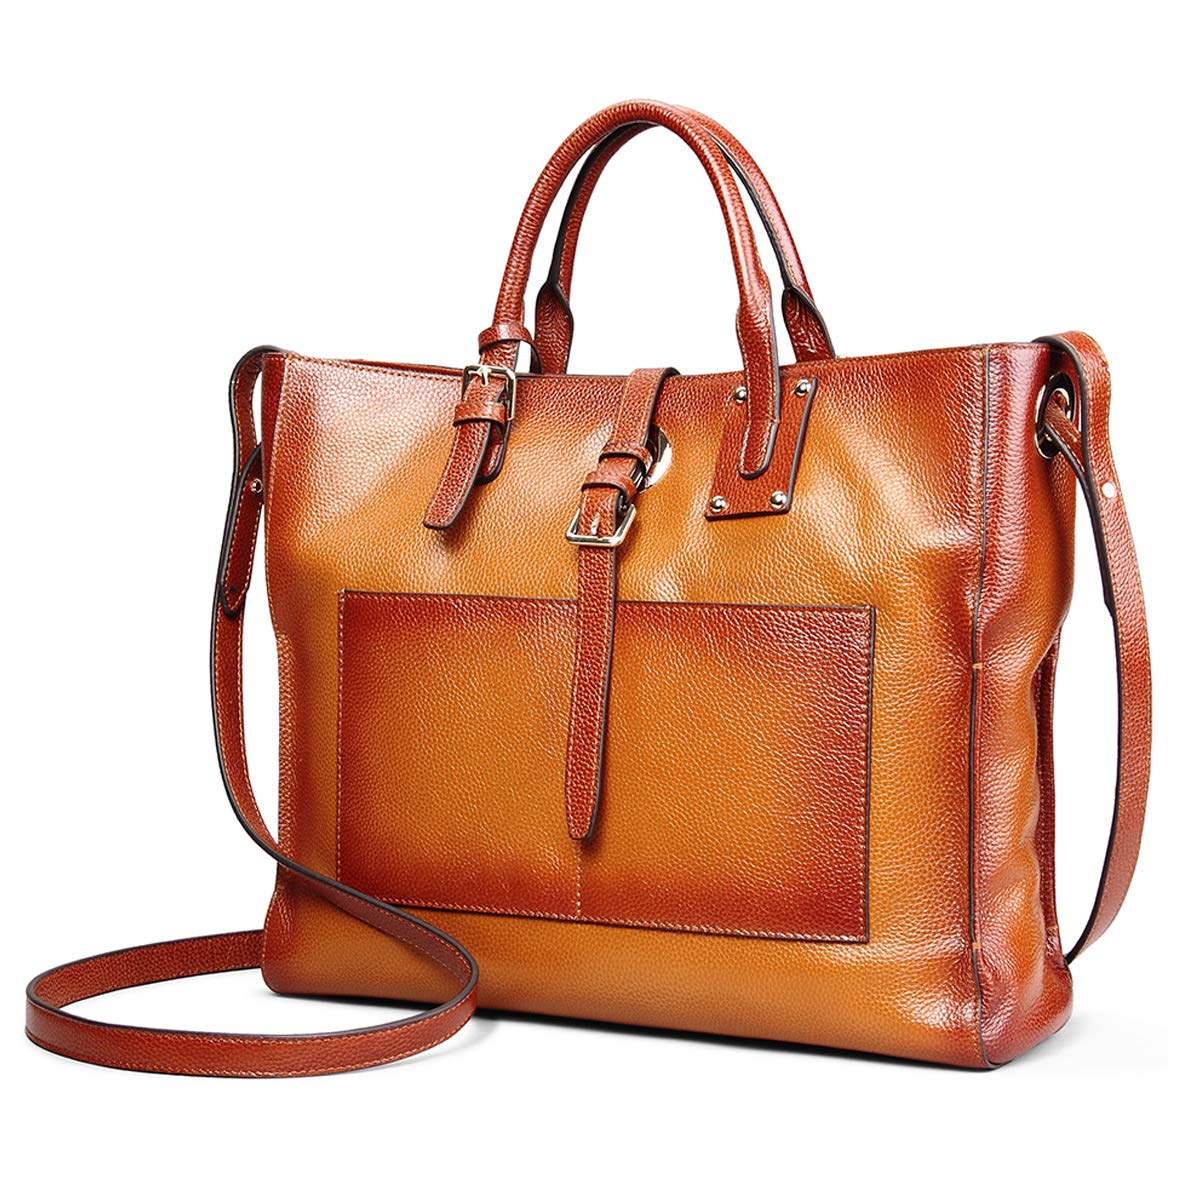 Womens Genuine Leather Handbags for Work Tote Bag Fit 14'' Laptop DAIZU Cowhide Large Purse